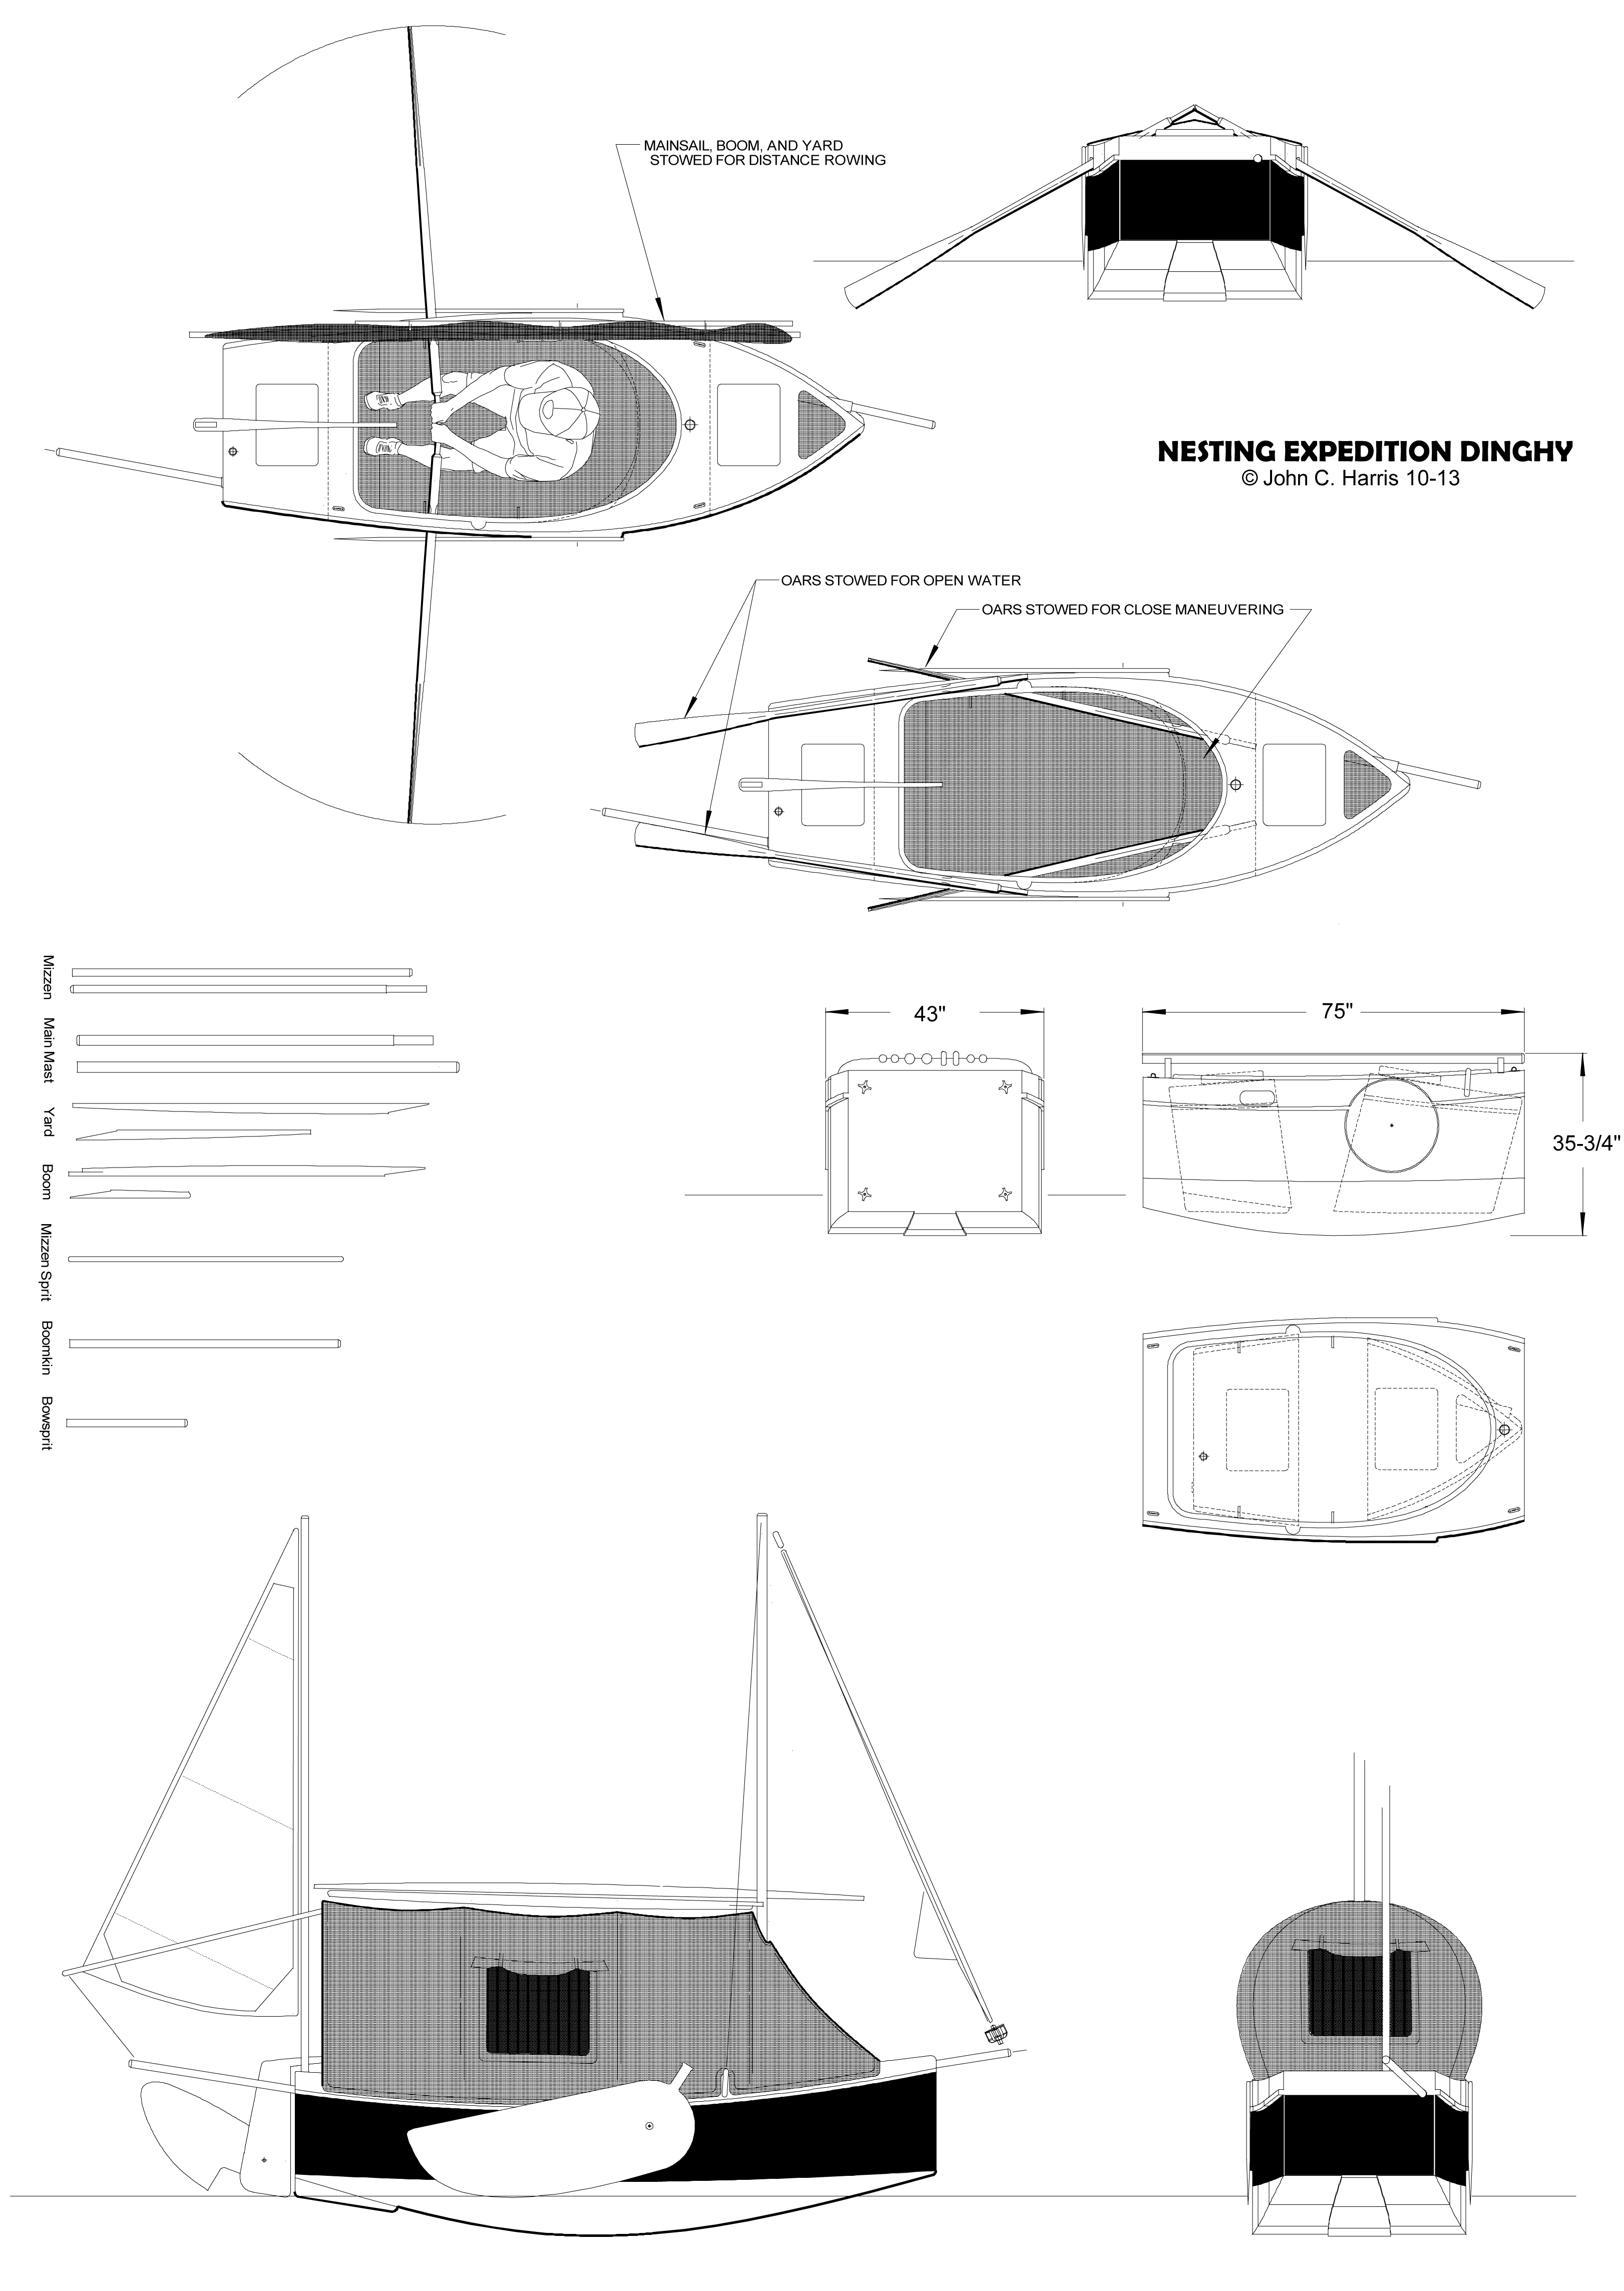 Nesting Expedition Dinghy:  Beach Cruiser for Amateur Boatbuilders by John C. Harris and Chesapeake Light Craft